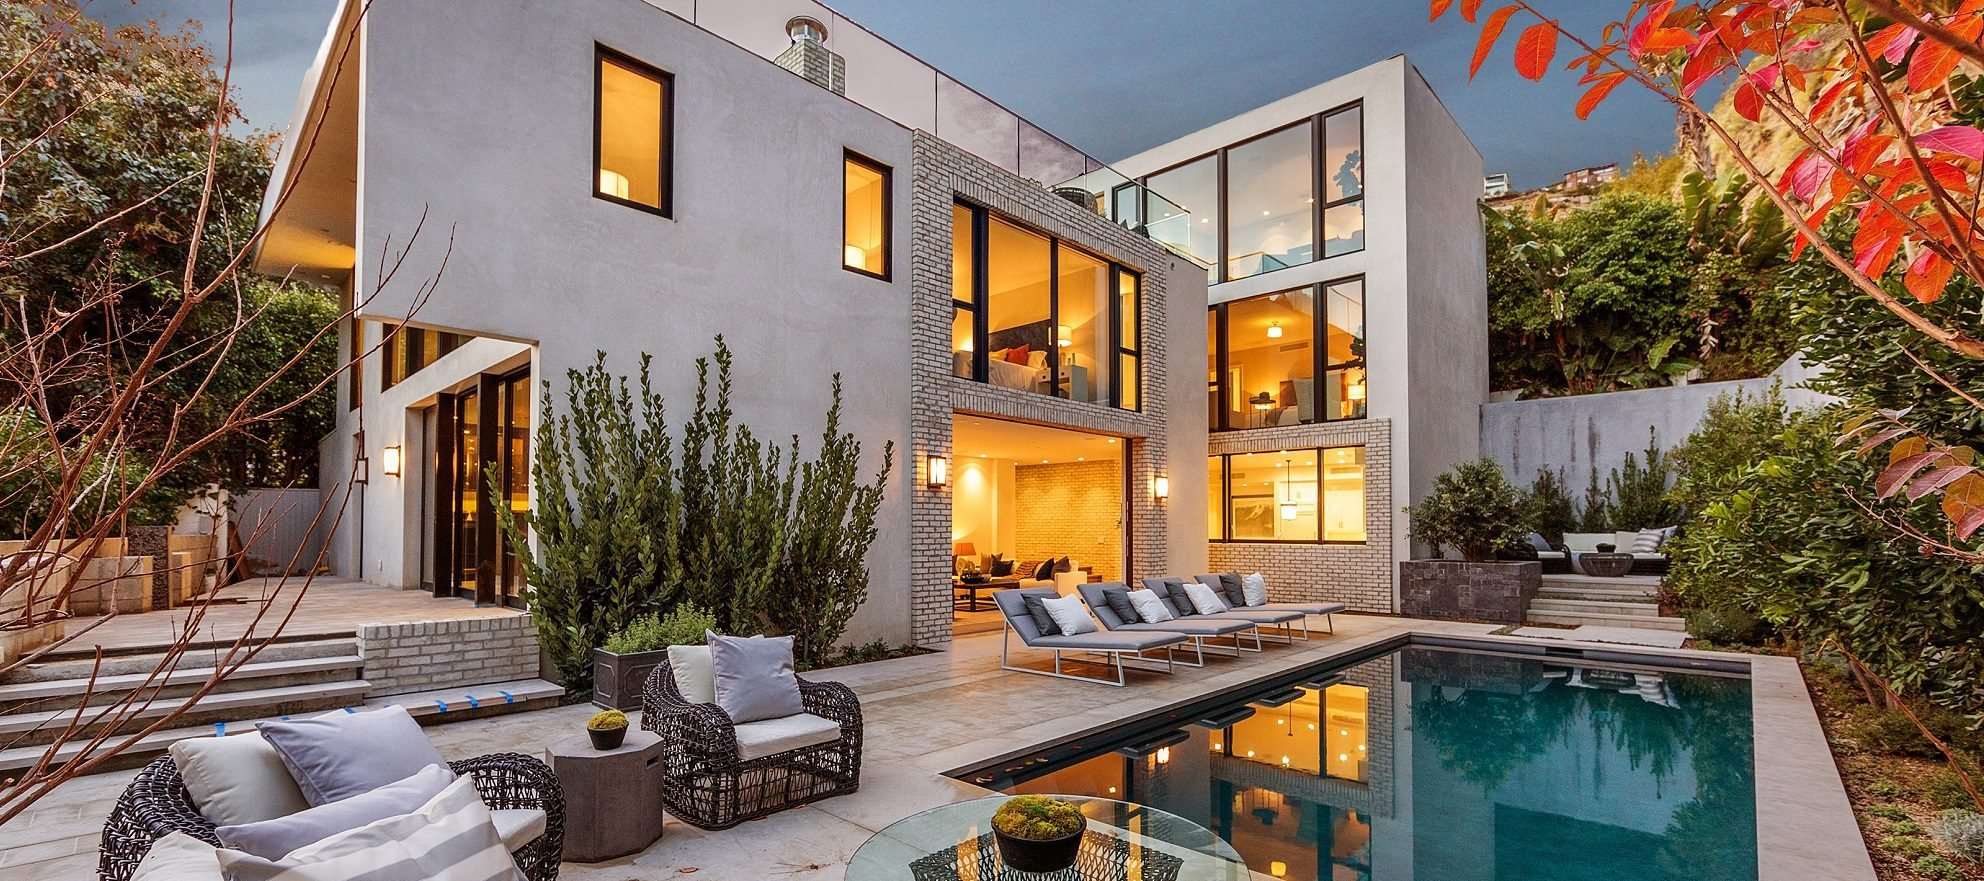 Luxury listing: contemporary architectural gem in Hollywood Hills